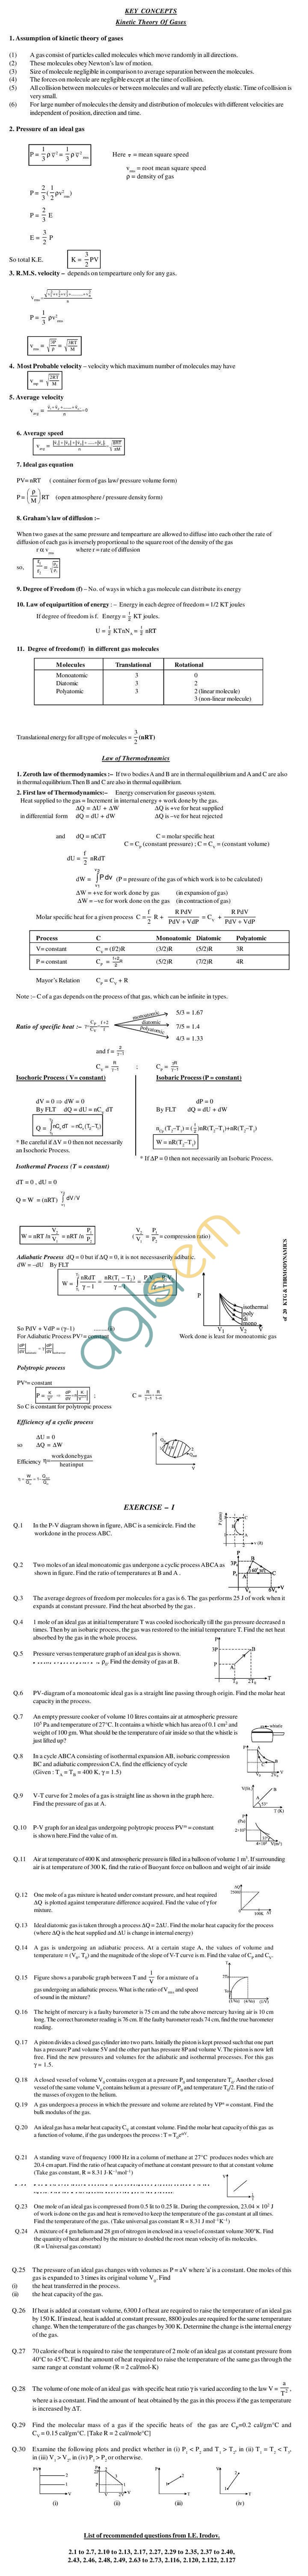 Physics Study Material - KTG & Thermodynamics